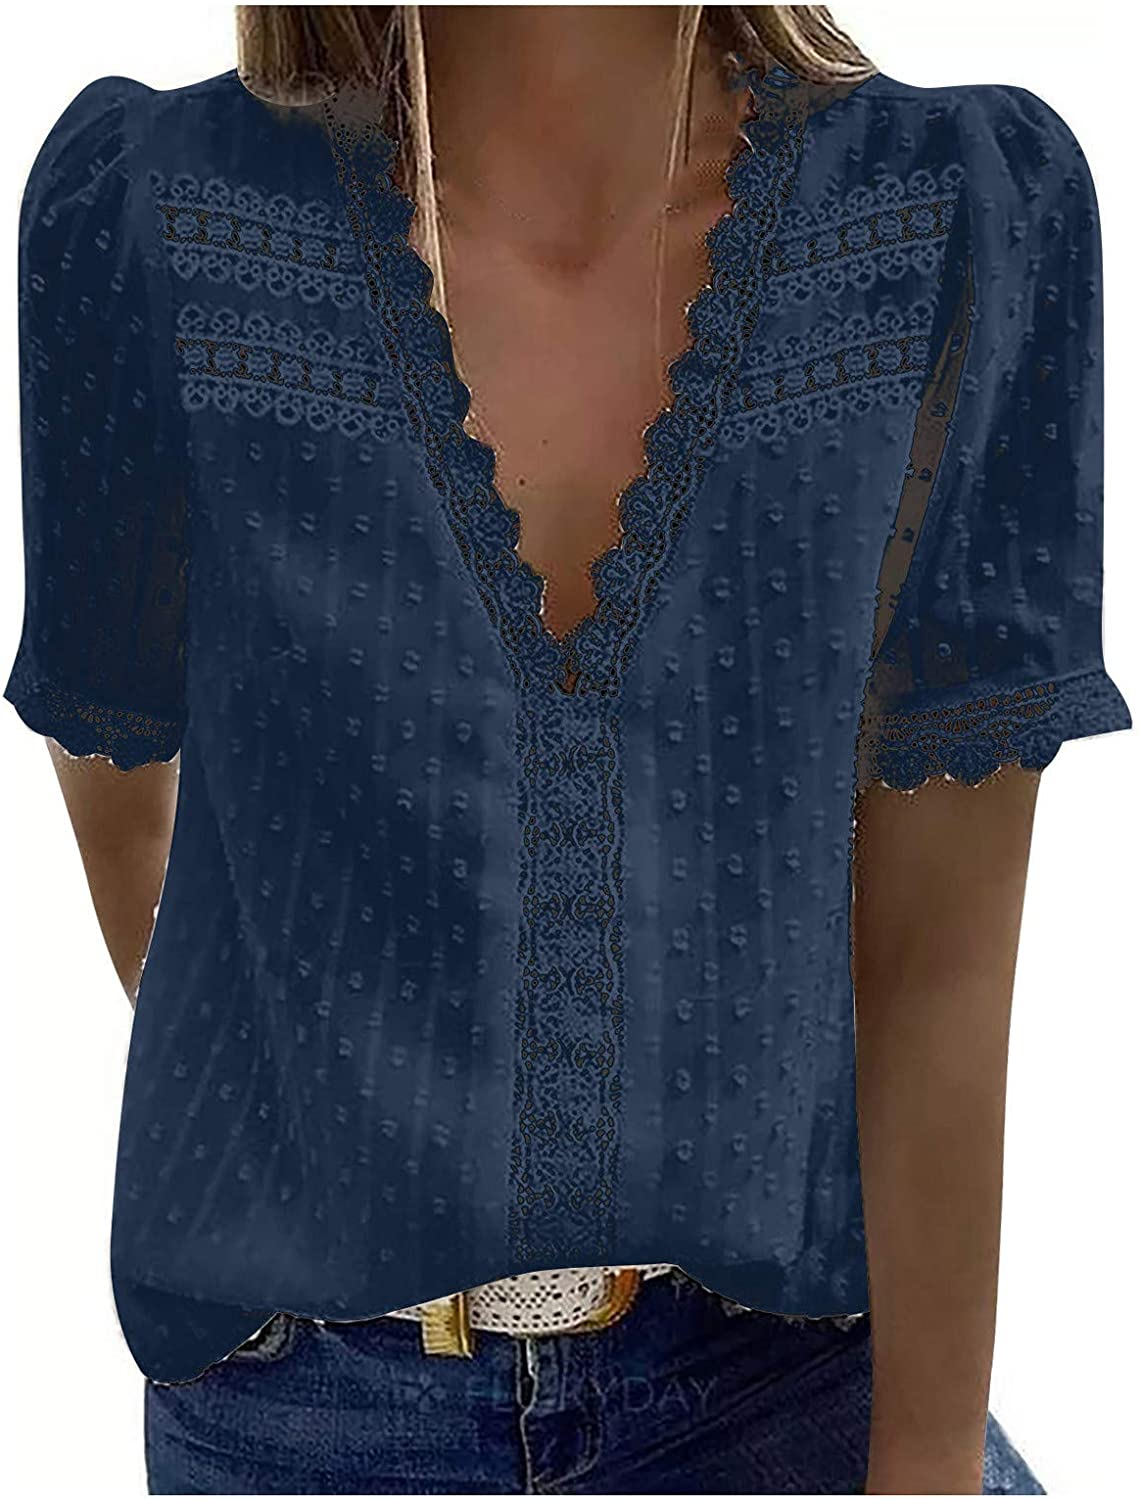 Jaqqra Summer Tops for Women, Womens Short Sleeve Tops Sexy Soild Color V-Neck T-Shirts Flowy Blouse Tops Tunic Tee